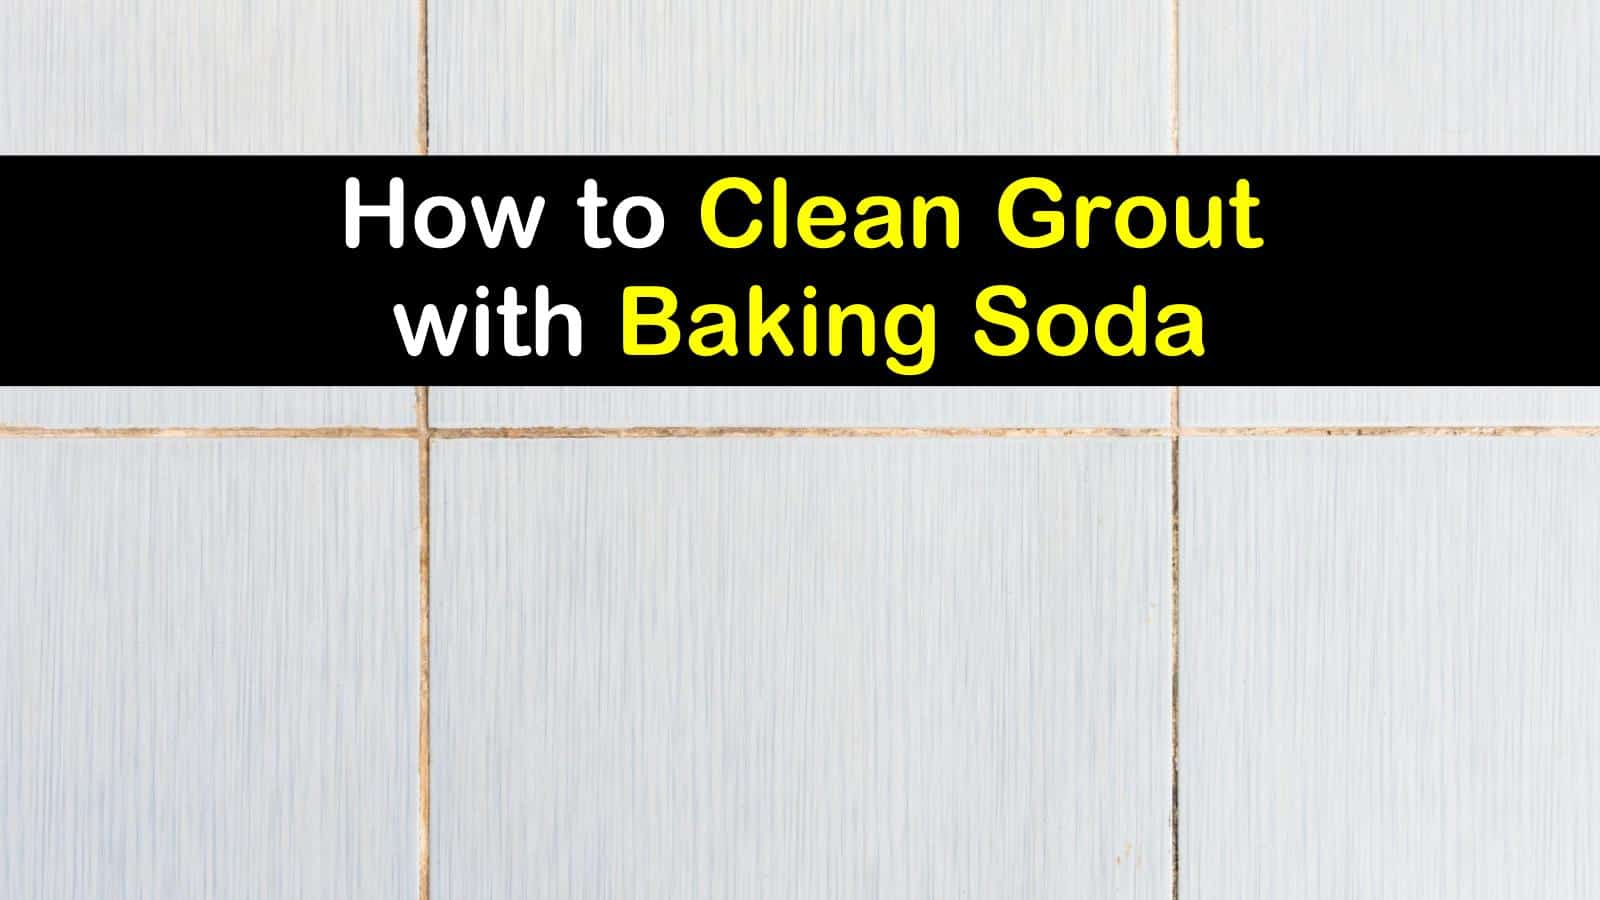 how to clean grout with baking soda titleimg1